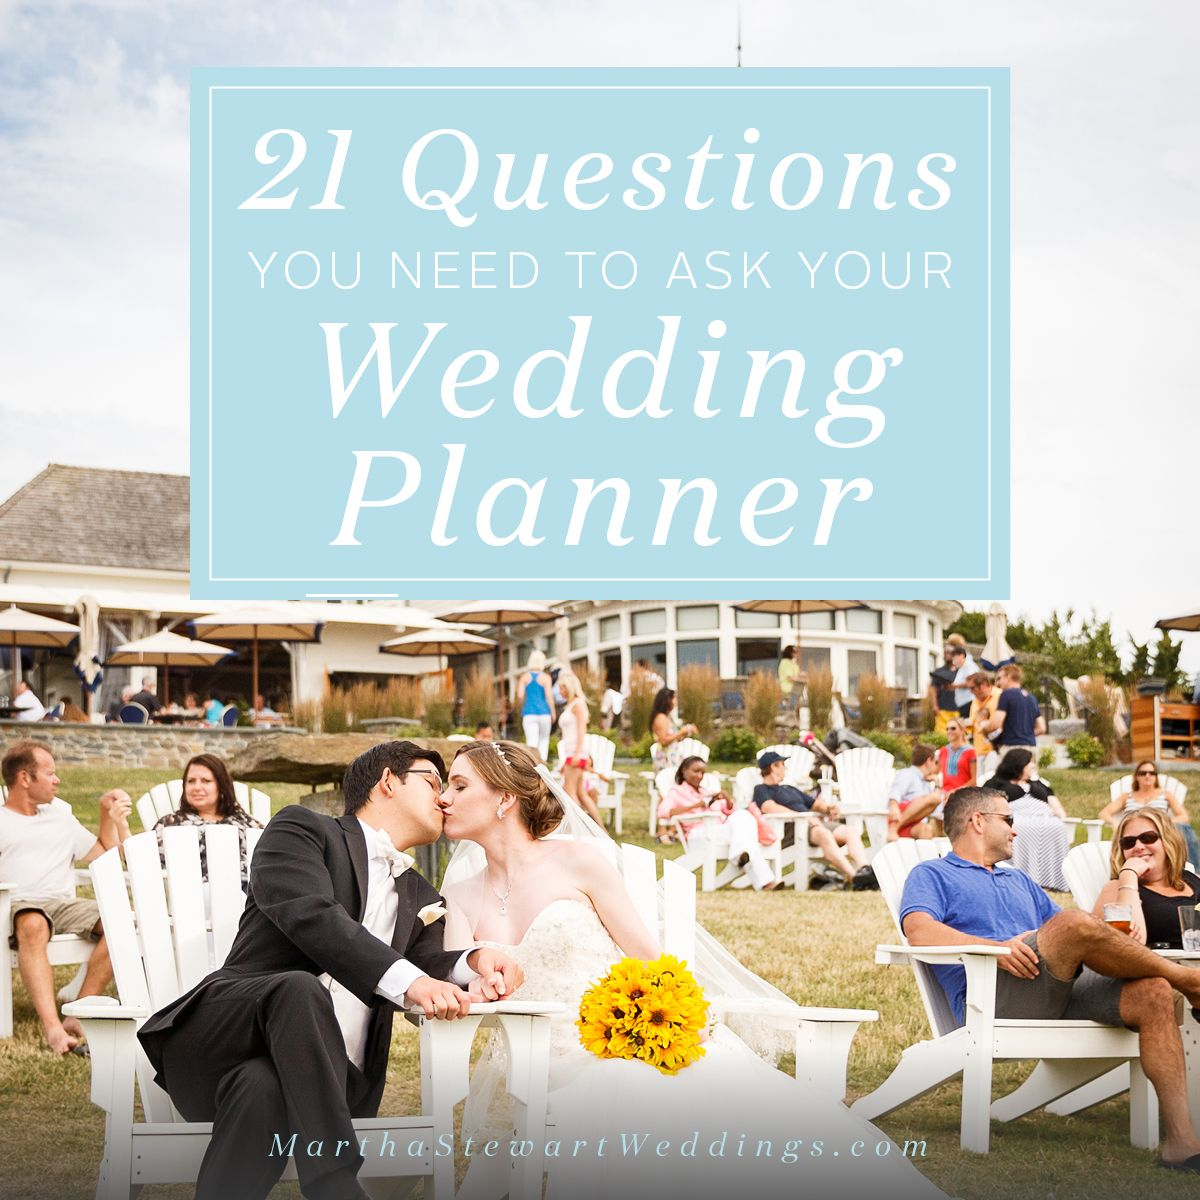 Celebrity Wedding Planner: 21 Questions You Need To Ask Your Wedding Planner